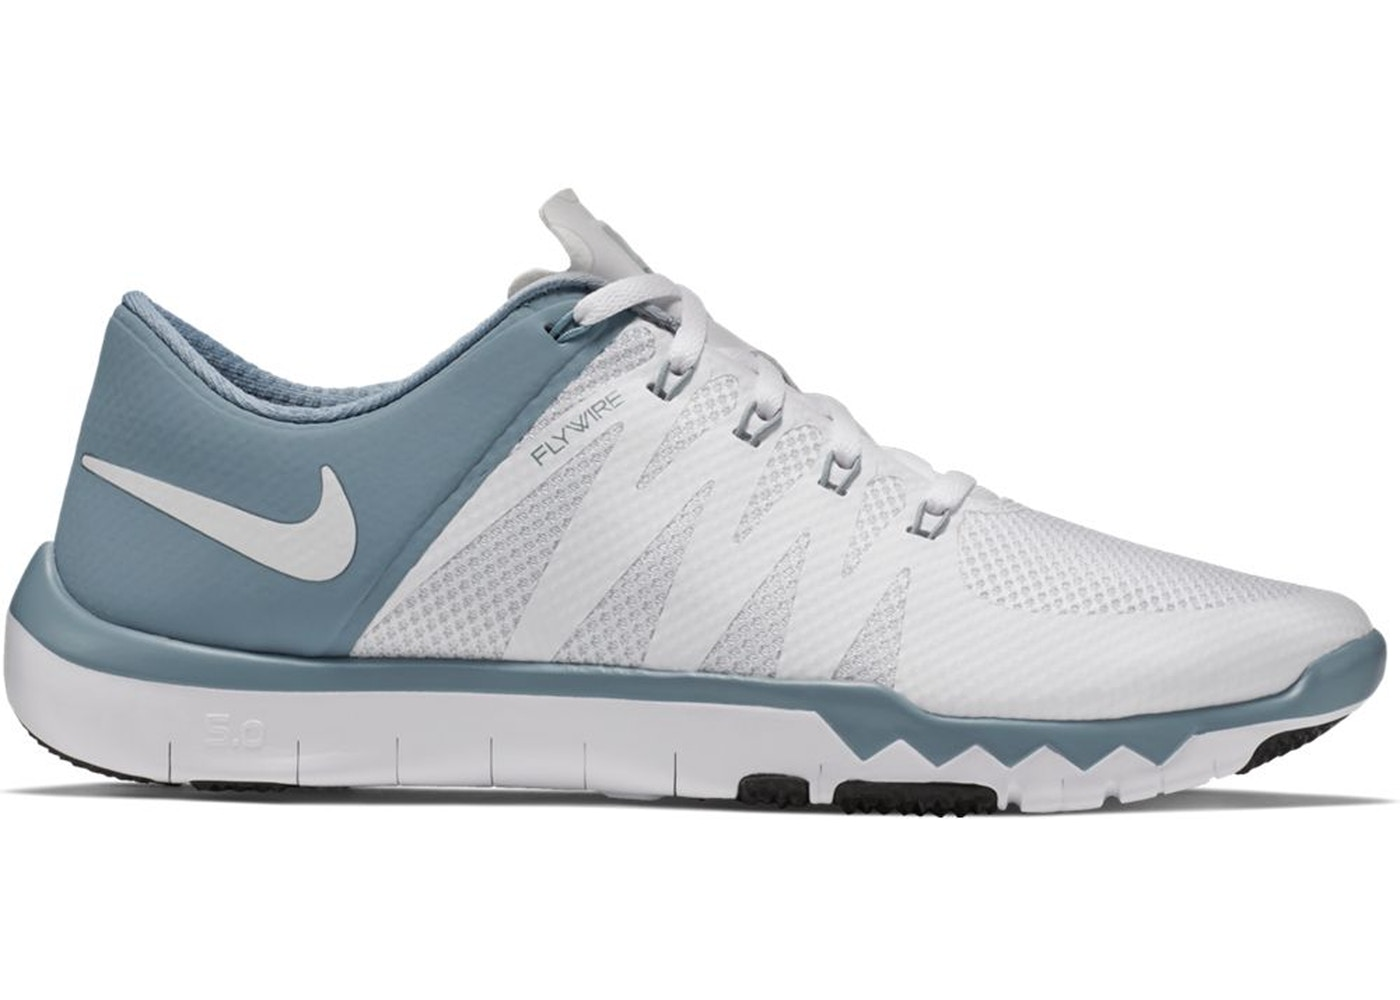 reputable site 0cce7 5097c Nike Free Trainer 5.0 V6 White Dove Grey - 719922-110